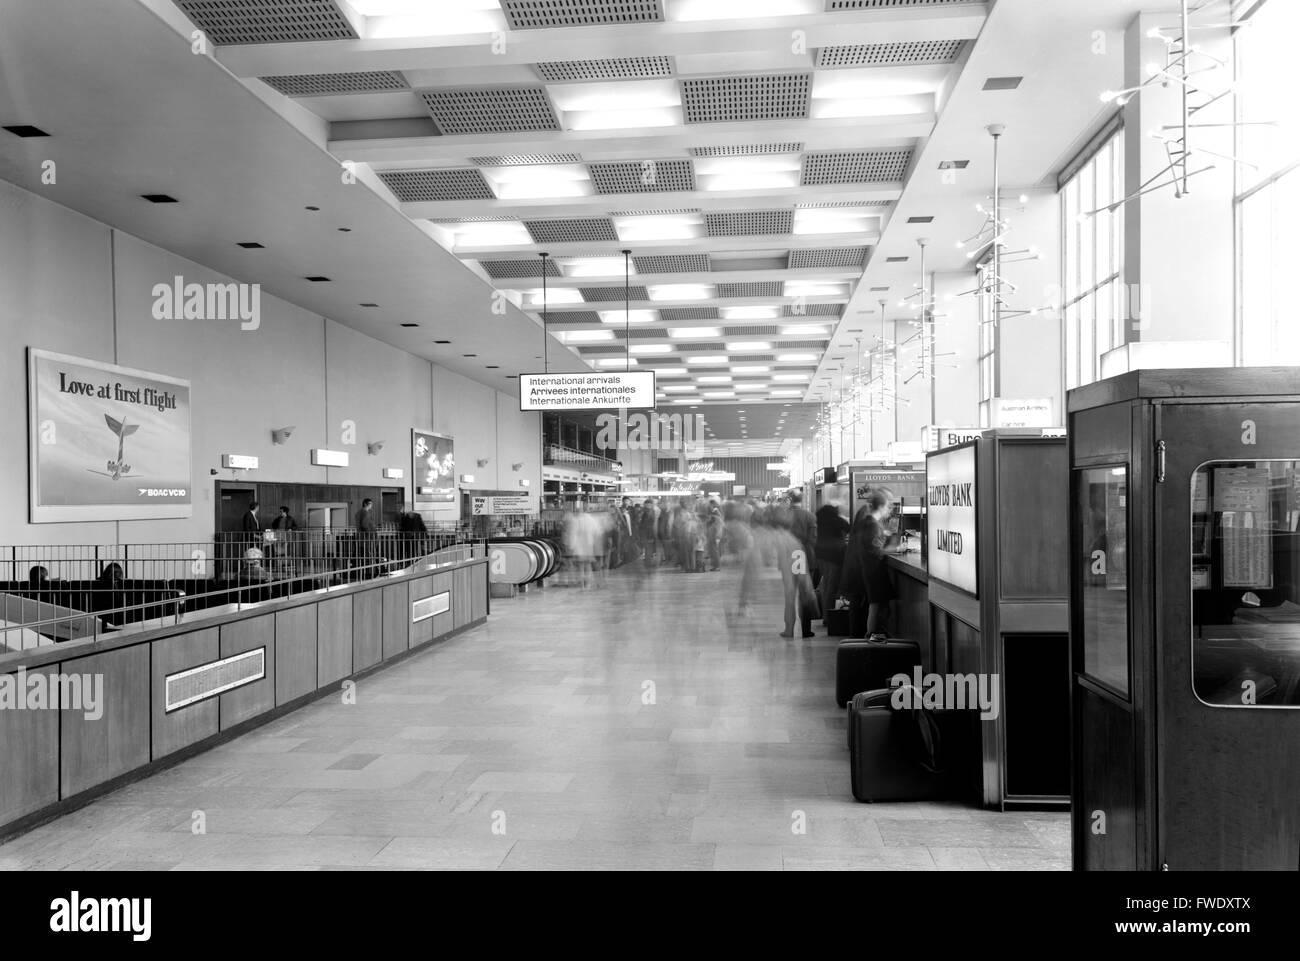 International Arrivals Hall at Terminal 2 Heathrow Airport taken on a half-plate camera around 1970. Note the unattended - Stock Image